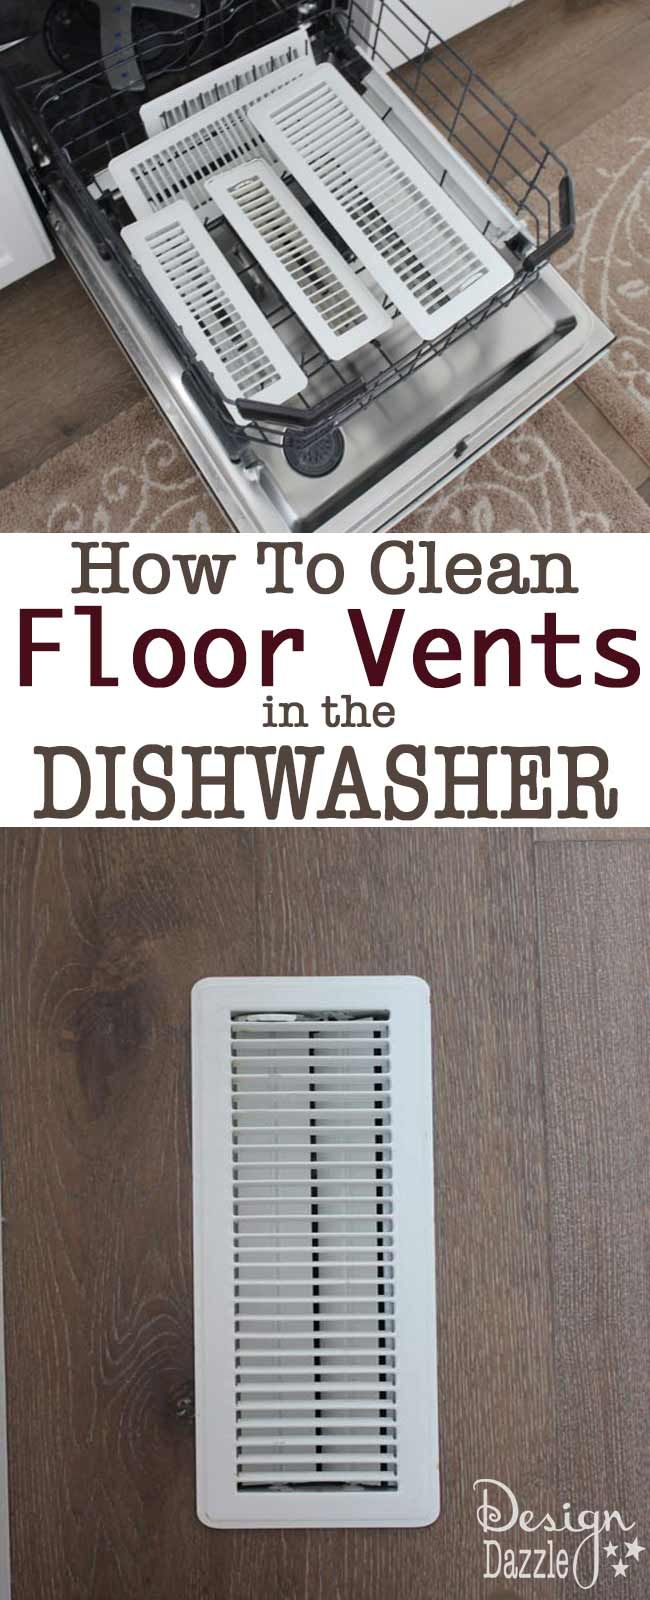 Yes, clean your floor and ceiling vents in the dishwasher. This idea is so QUICK and EASY!!! Check details in our post to see the do's and don'ts. Design Dazzle